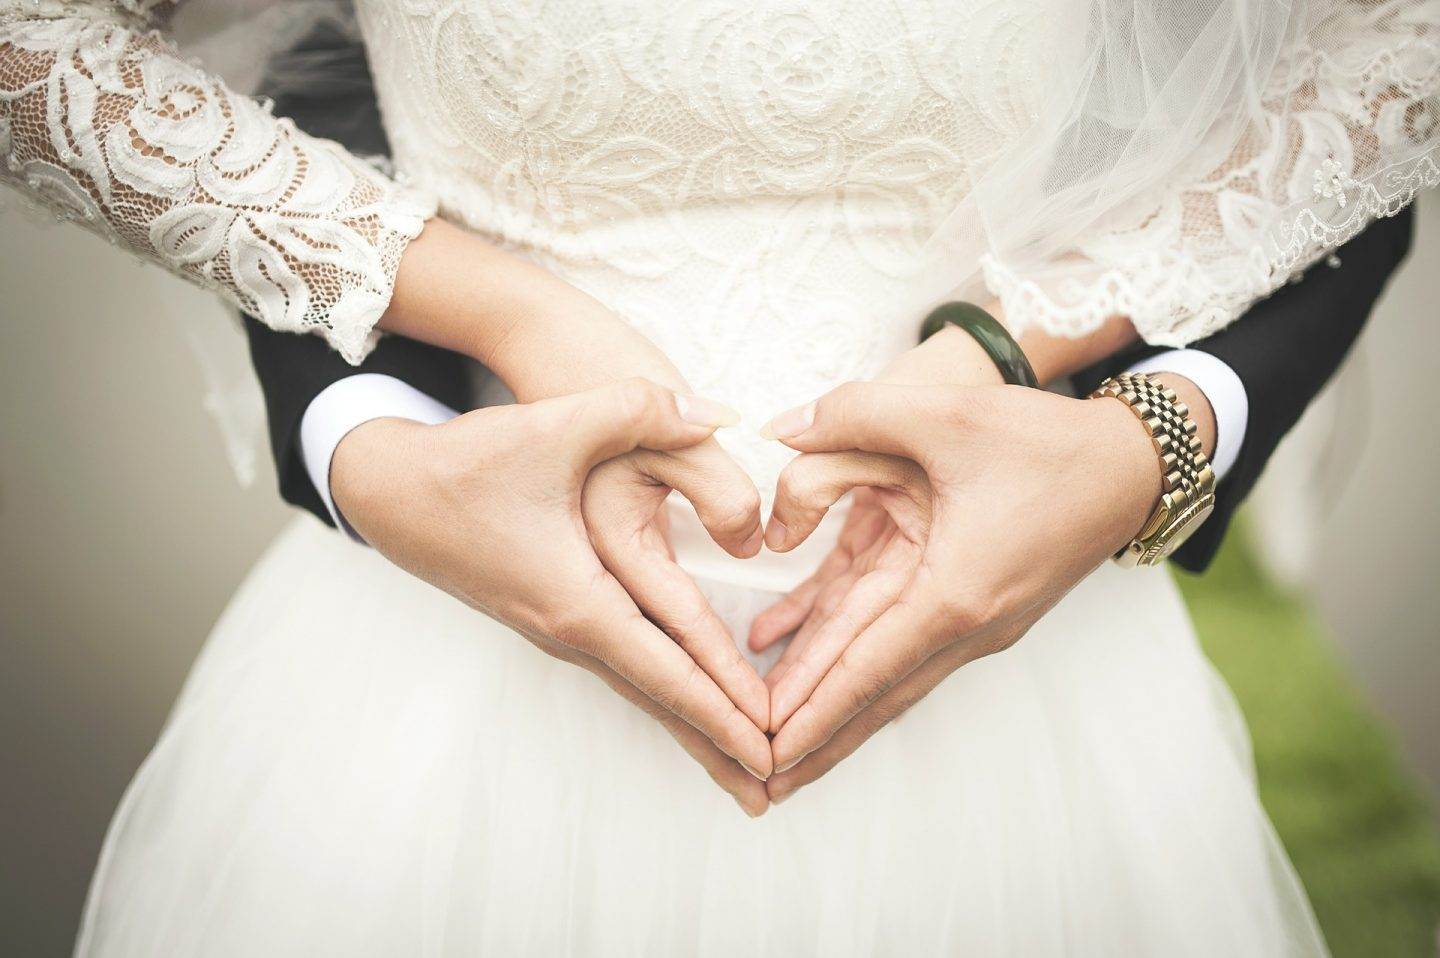 6 WAYS TO MAKE YOUR WEDDING DAY EVEN MORE SPECIAL